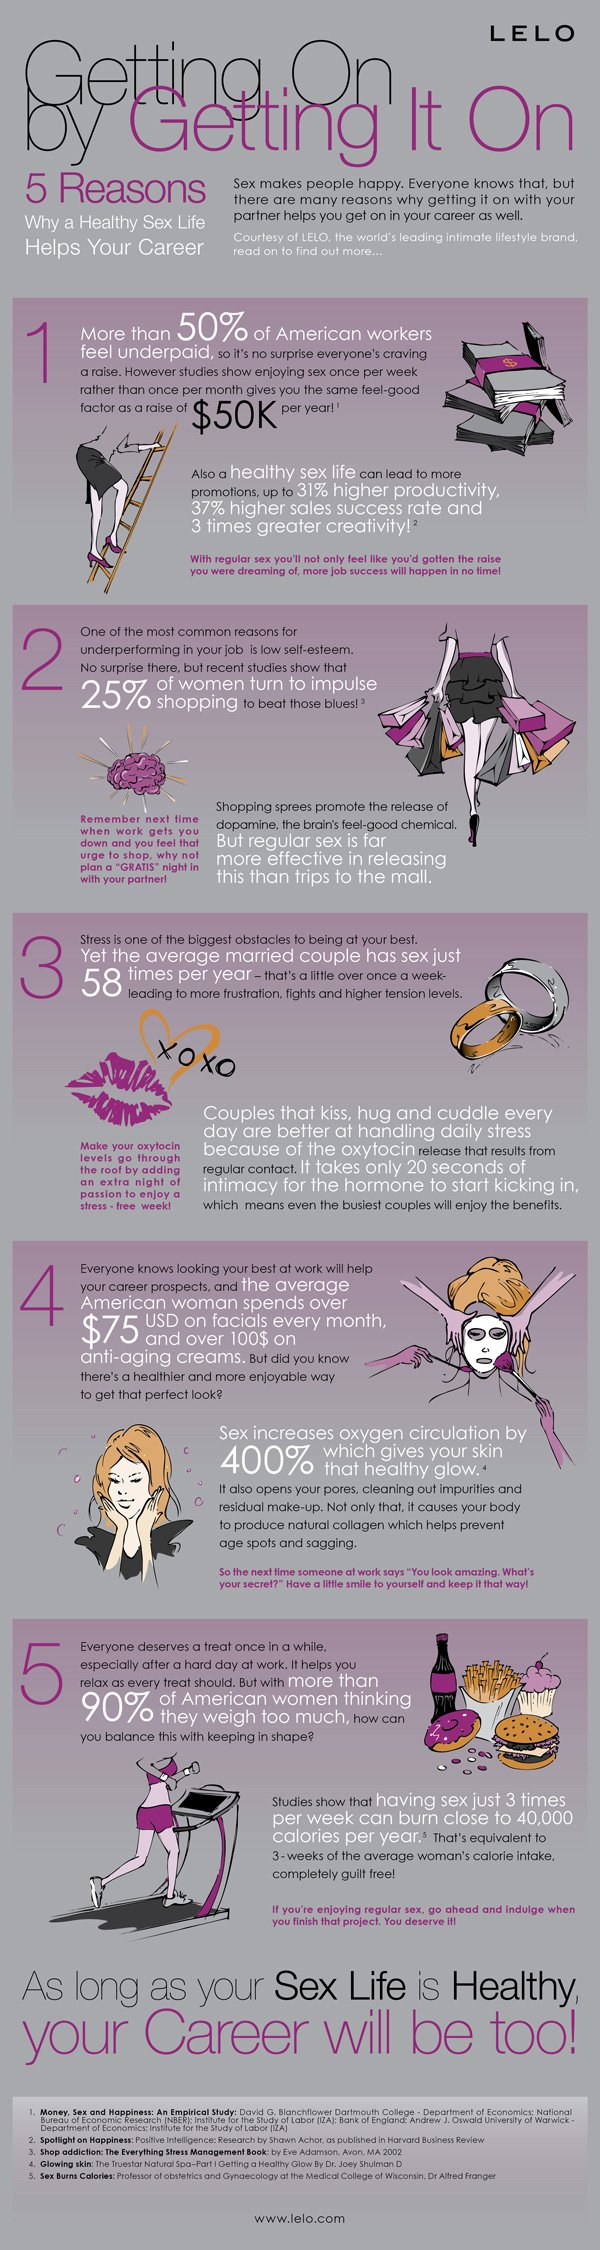 LELO Infographic - Getting On by Getting It On